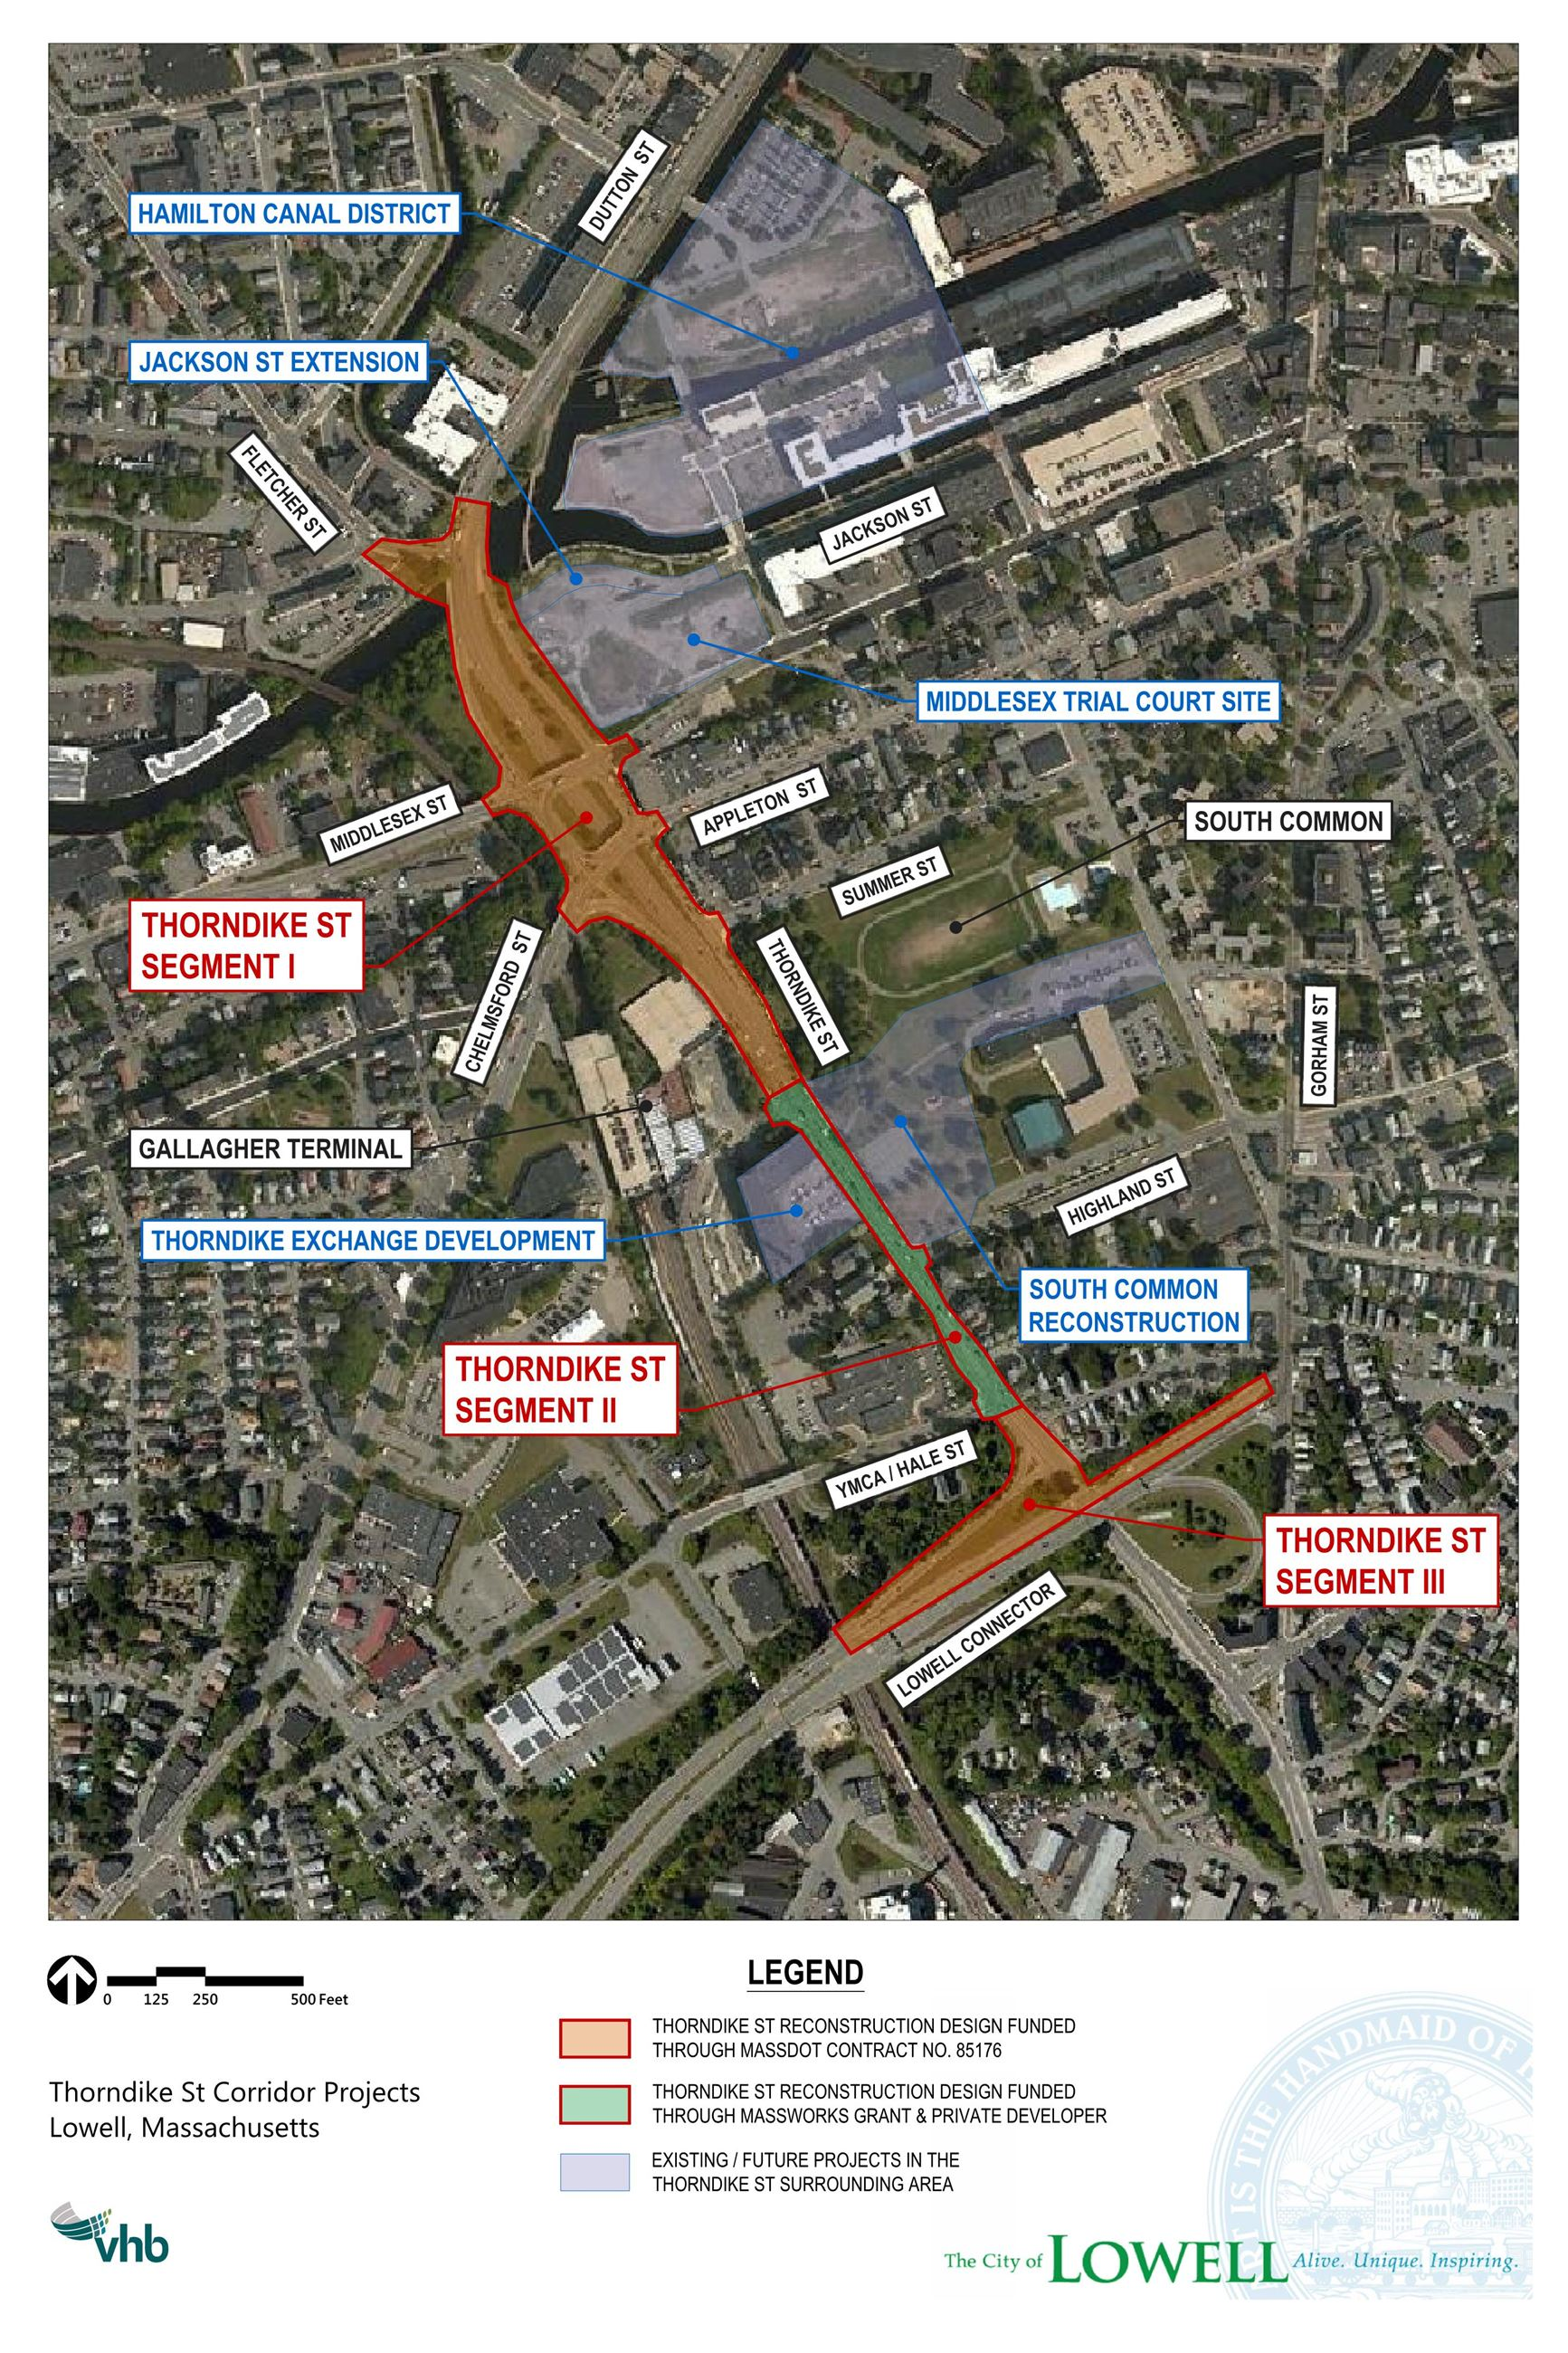 Thorndike St Corridor Projects